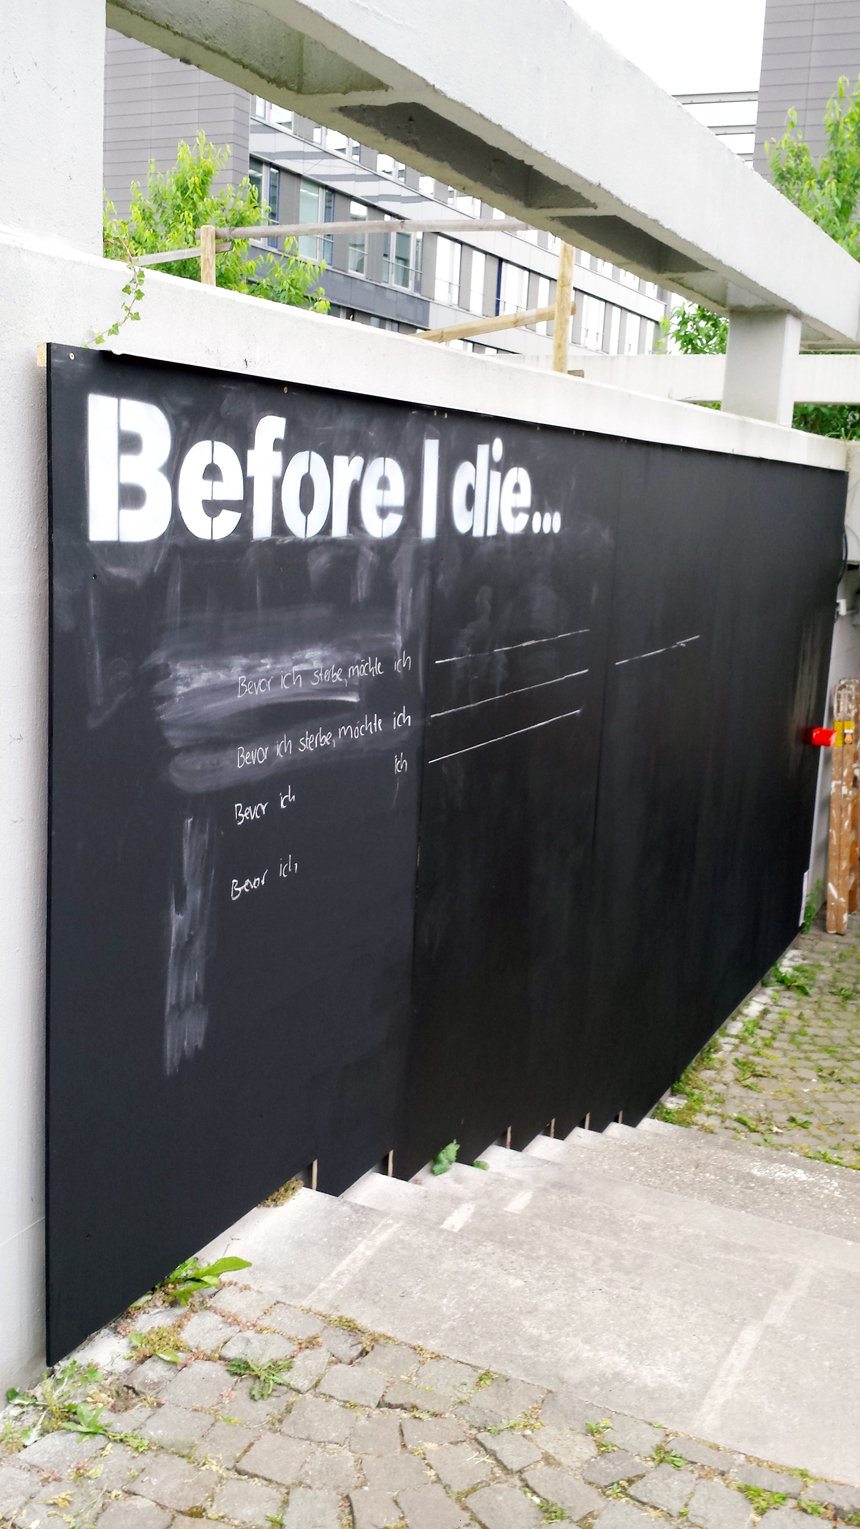 Before i die-2